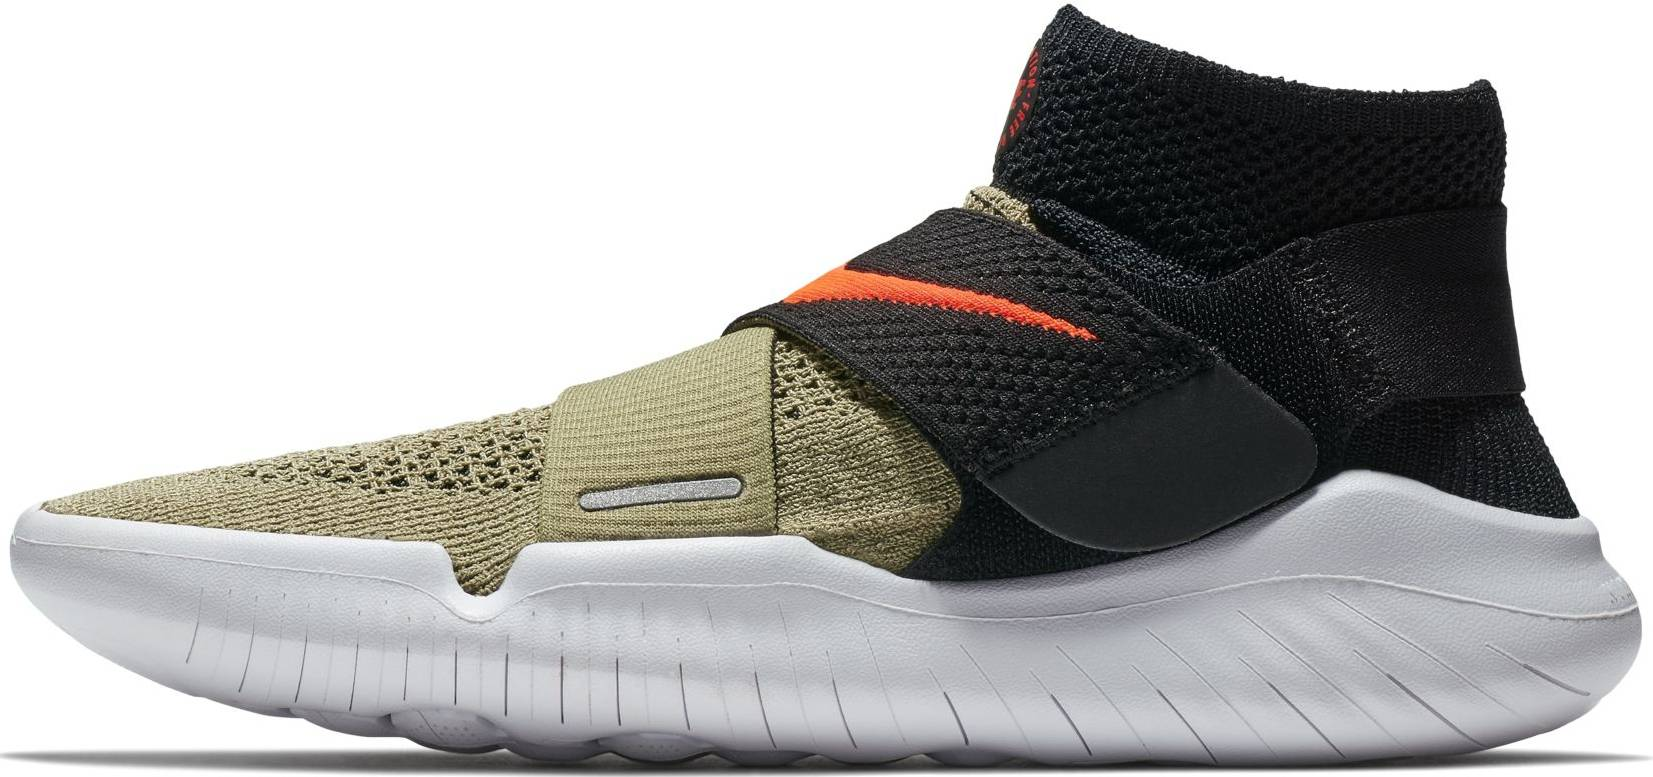 Save 21% on Nike High-top Running Shoes